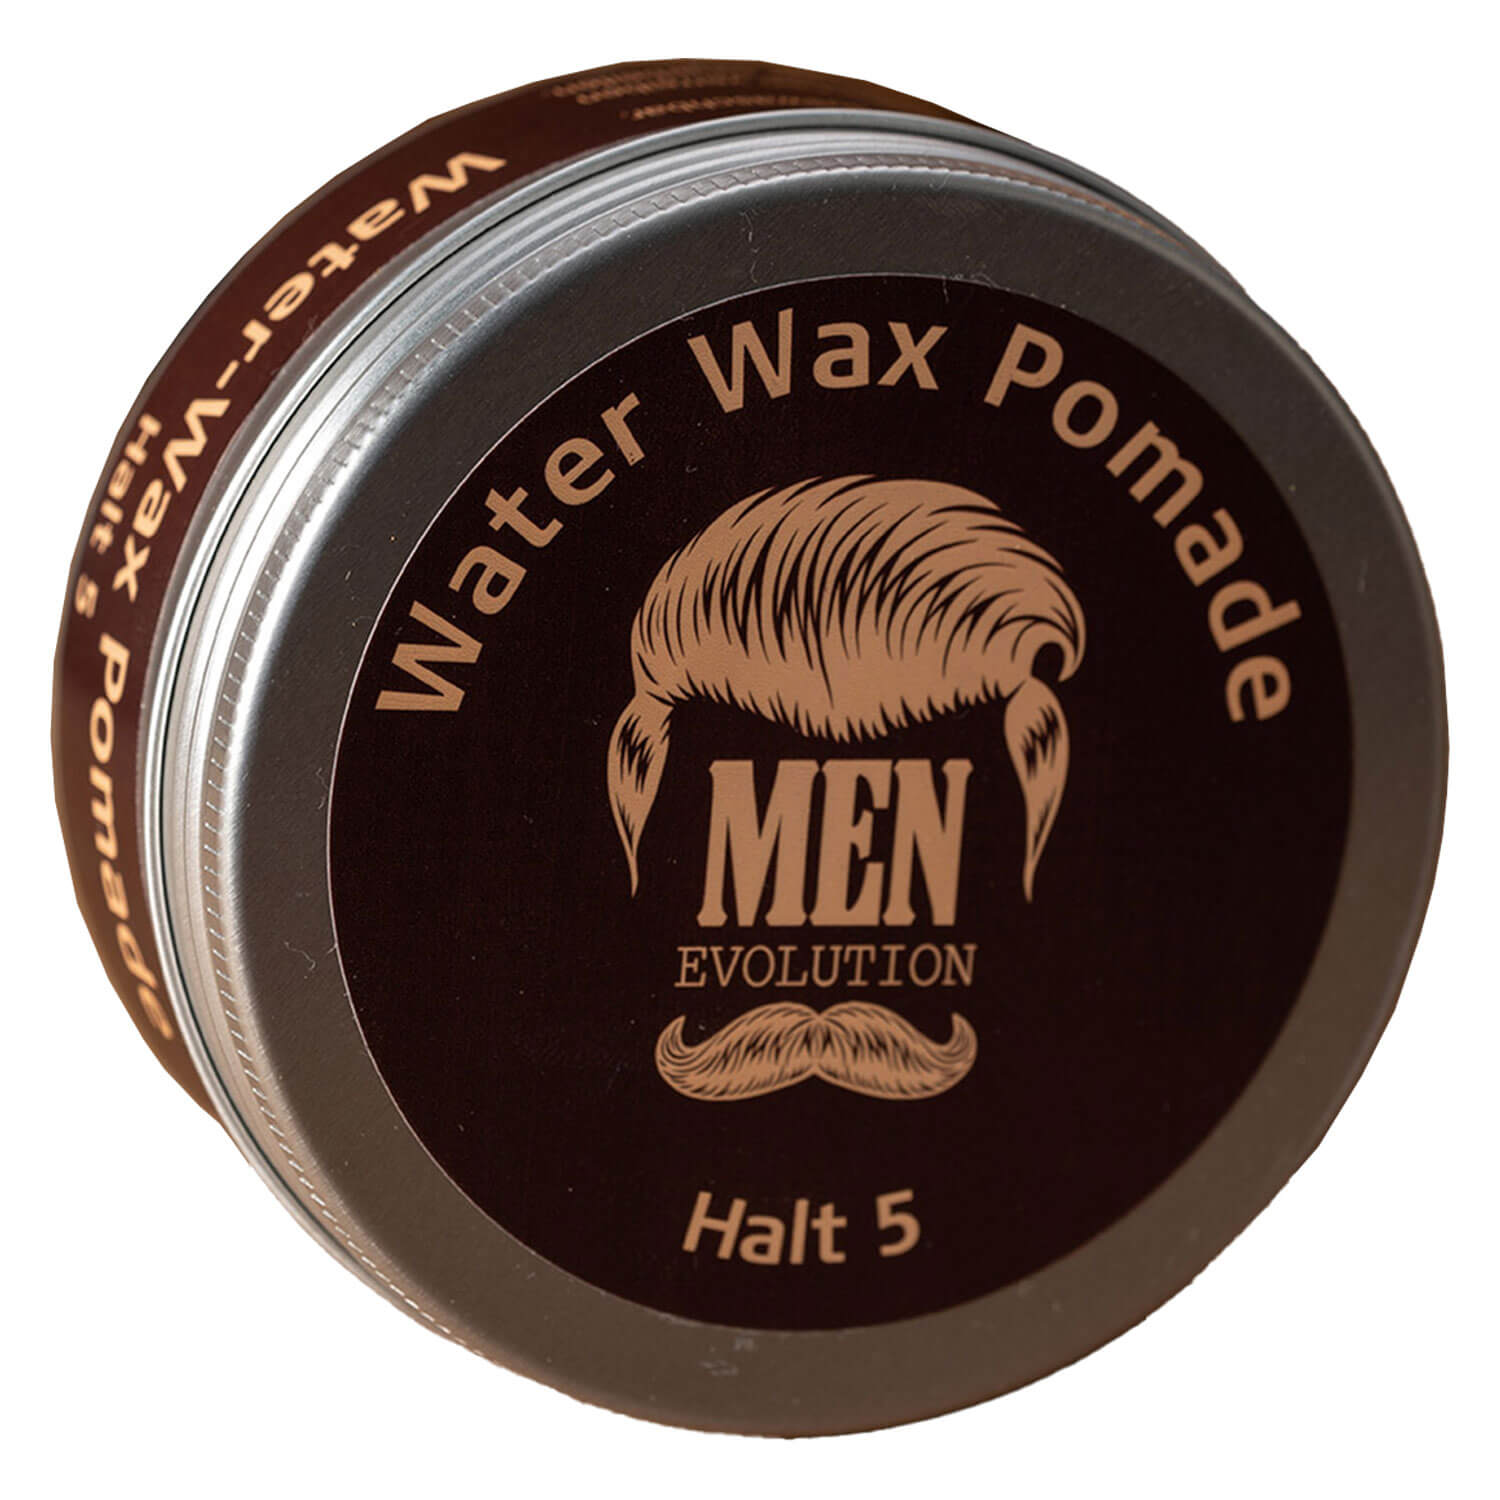 MEN Evolution - Water Wax Pomade